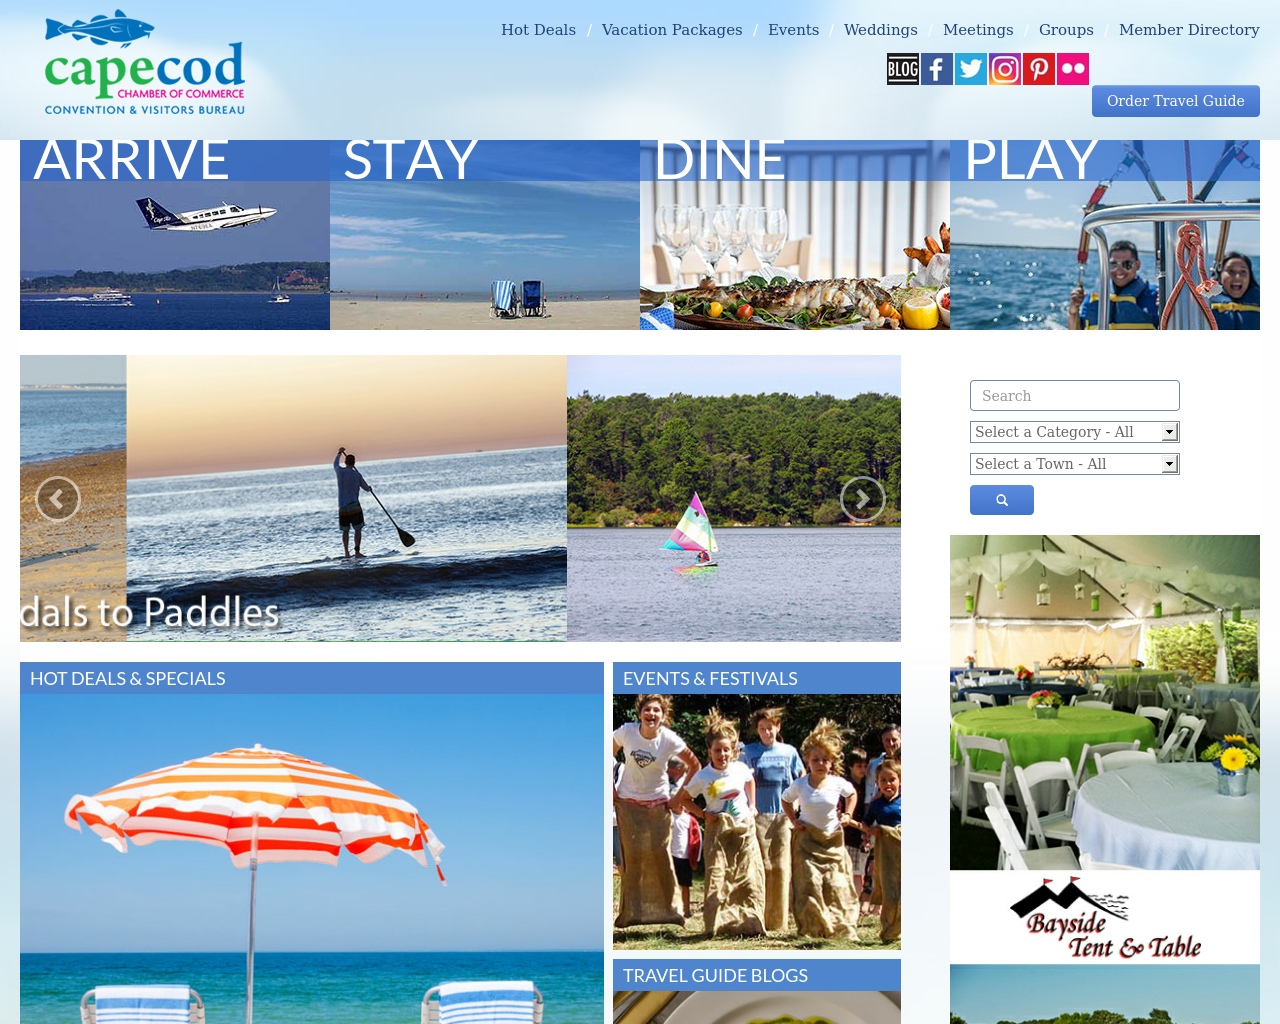 Cape-Cod-Travel-Guide-Advertising-Reviews-Pricing